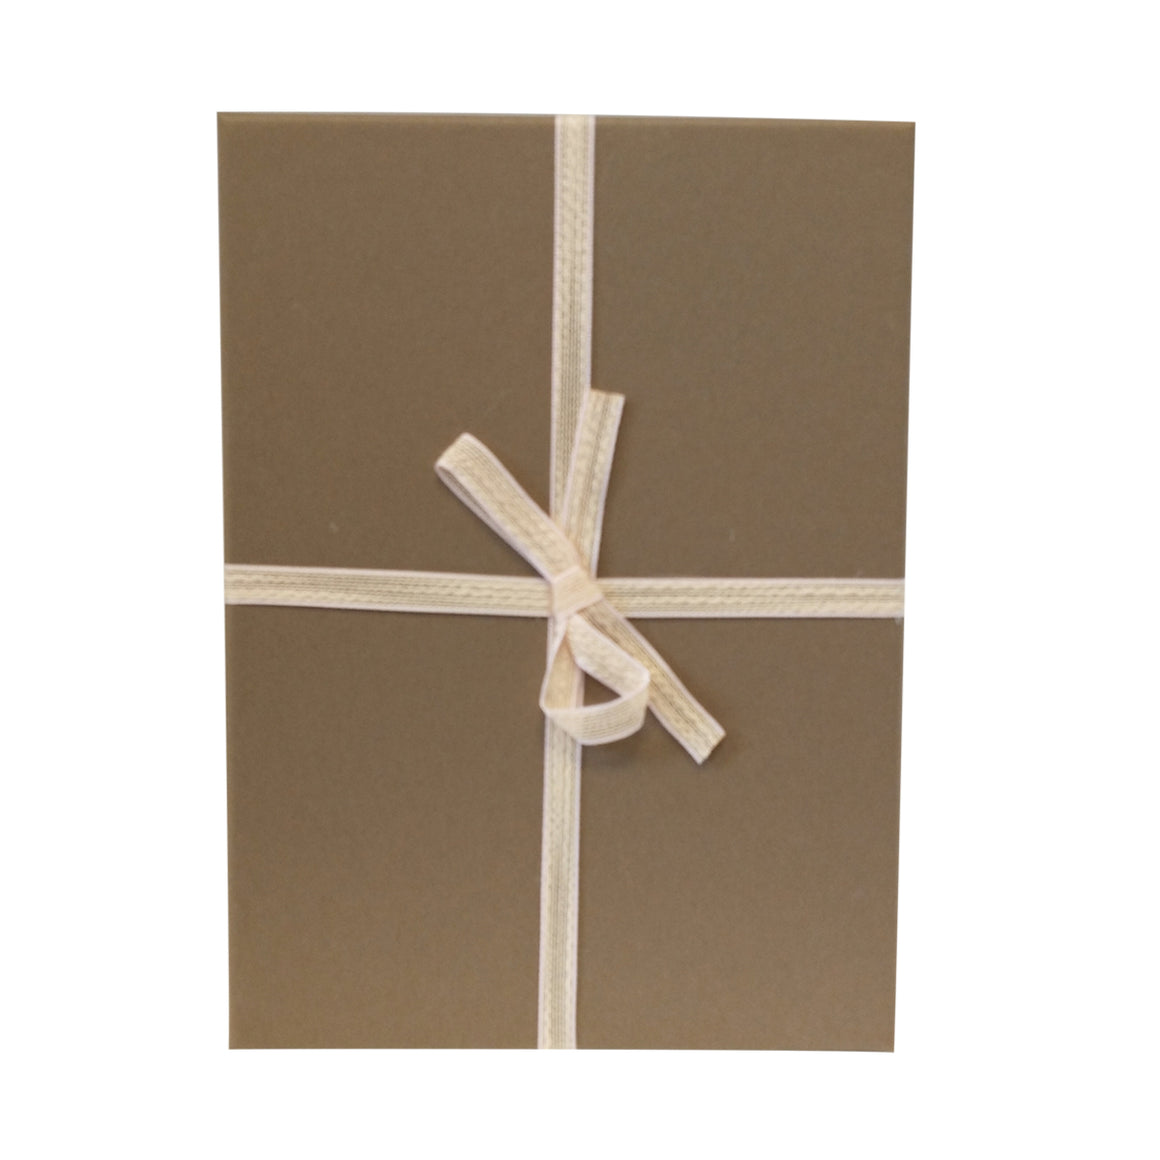 Rectangular Gift Box with Bow -Set of 3